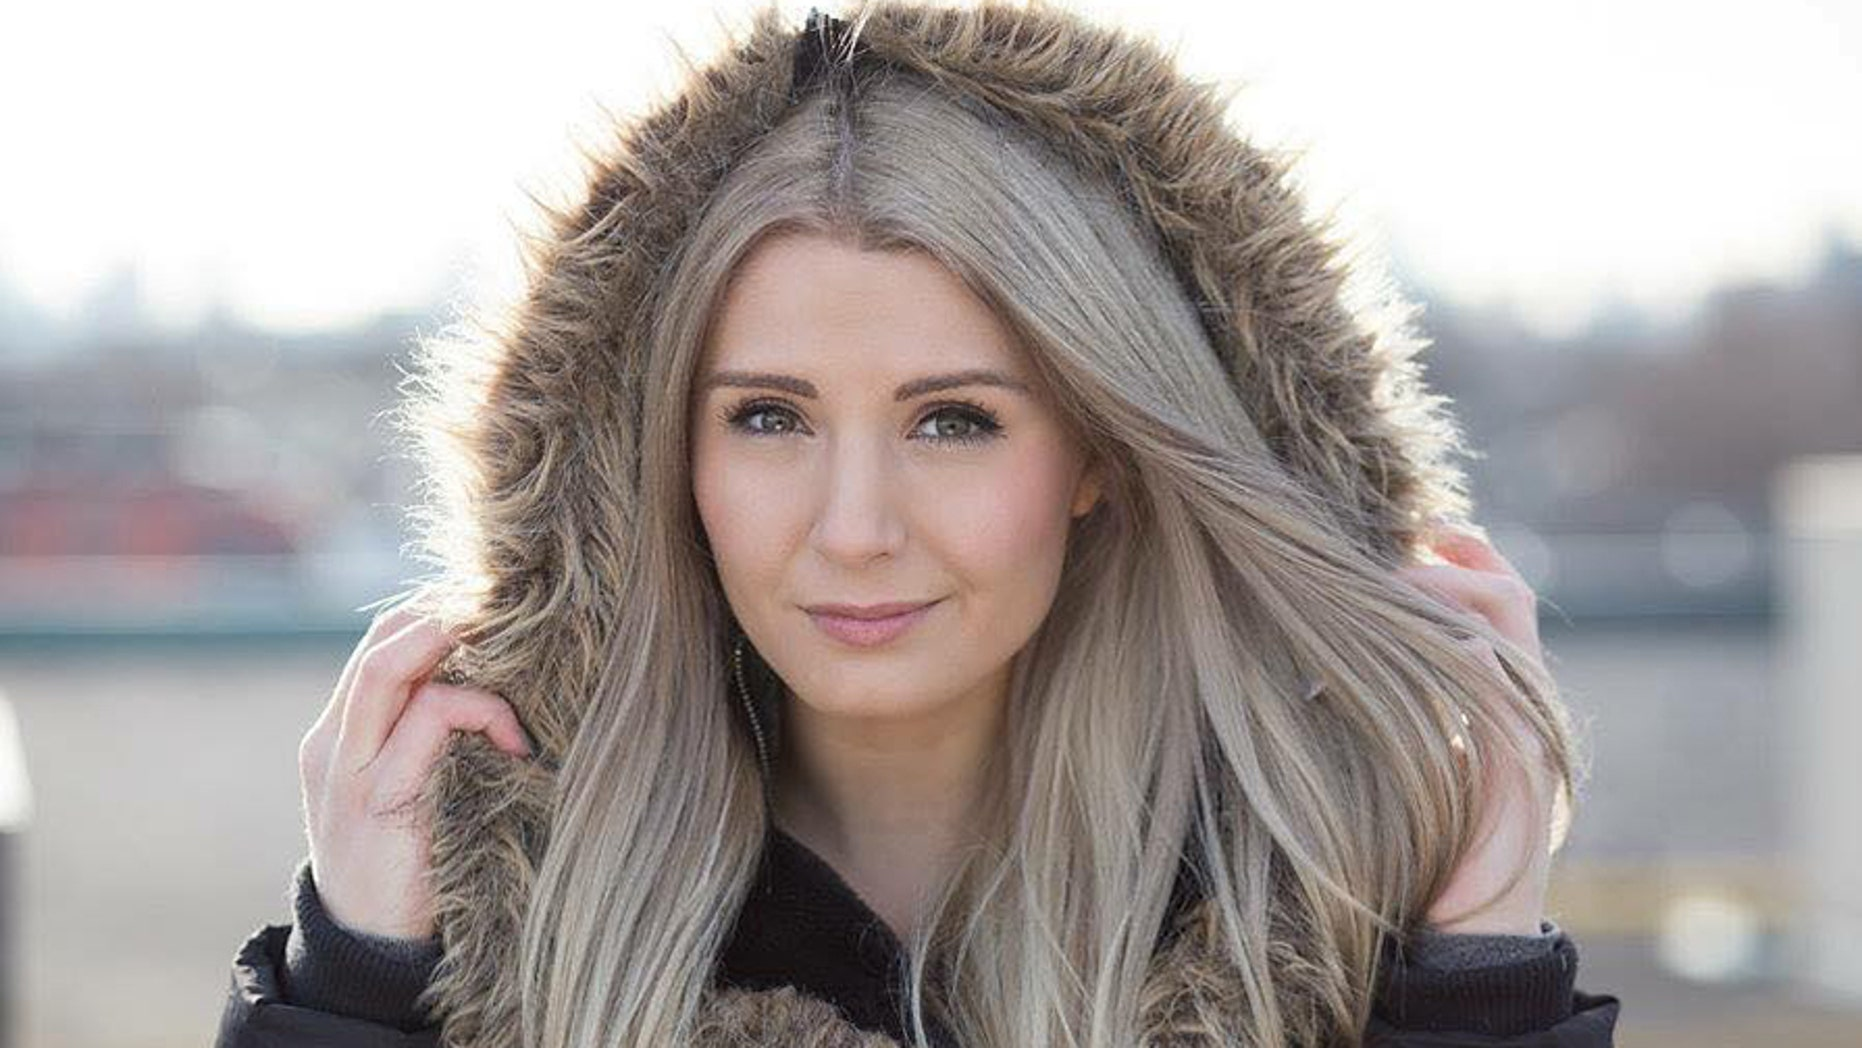 Right-wing journalist Lauren Southern was barred from entering the U.K.